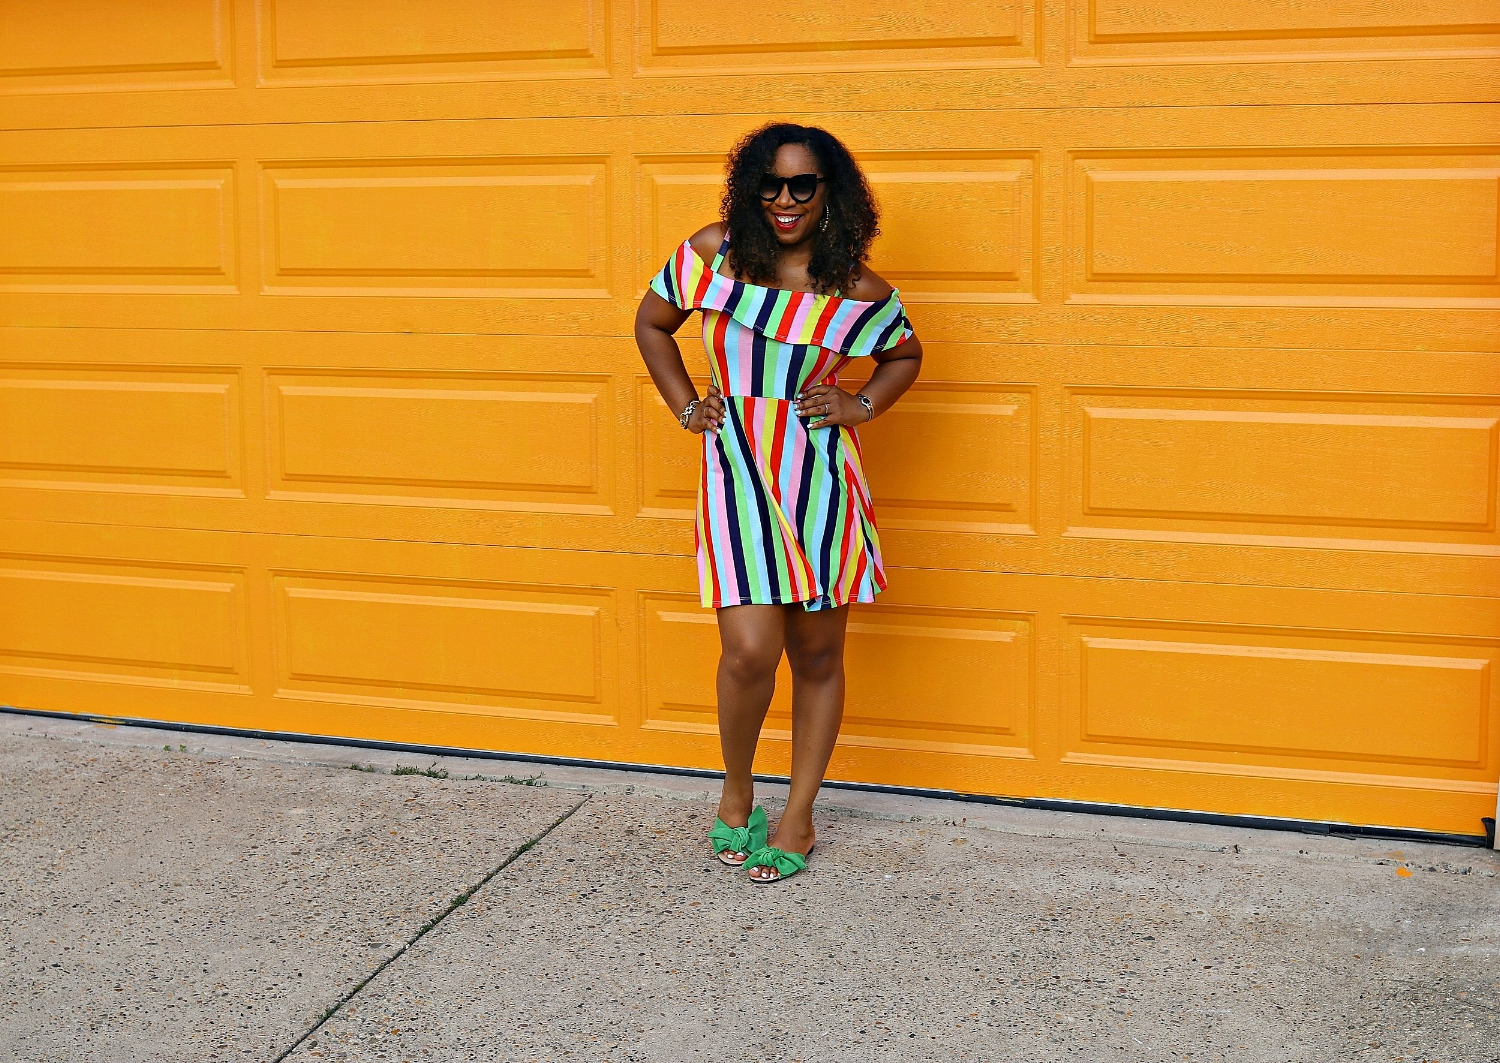 Stripe Colorful Dress, Summer Fashion, Girlie Style